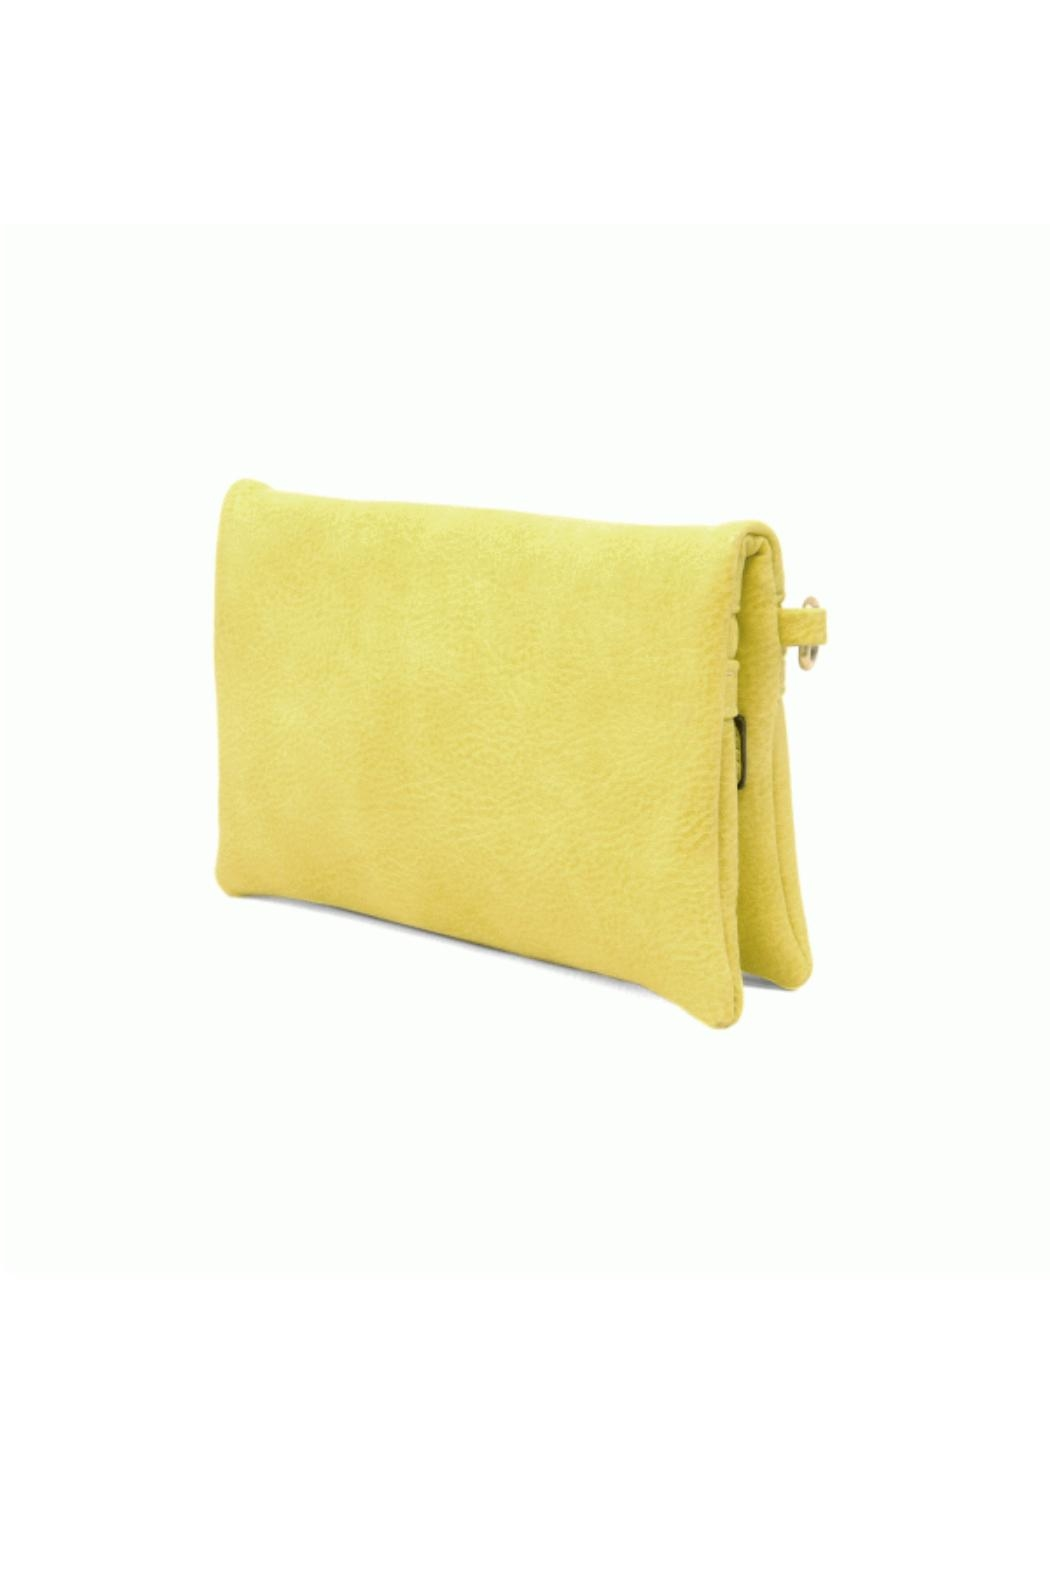 Joy Accessories Kate Crossbody - Lime - Back Cropped Image